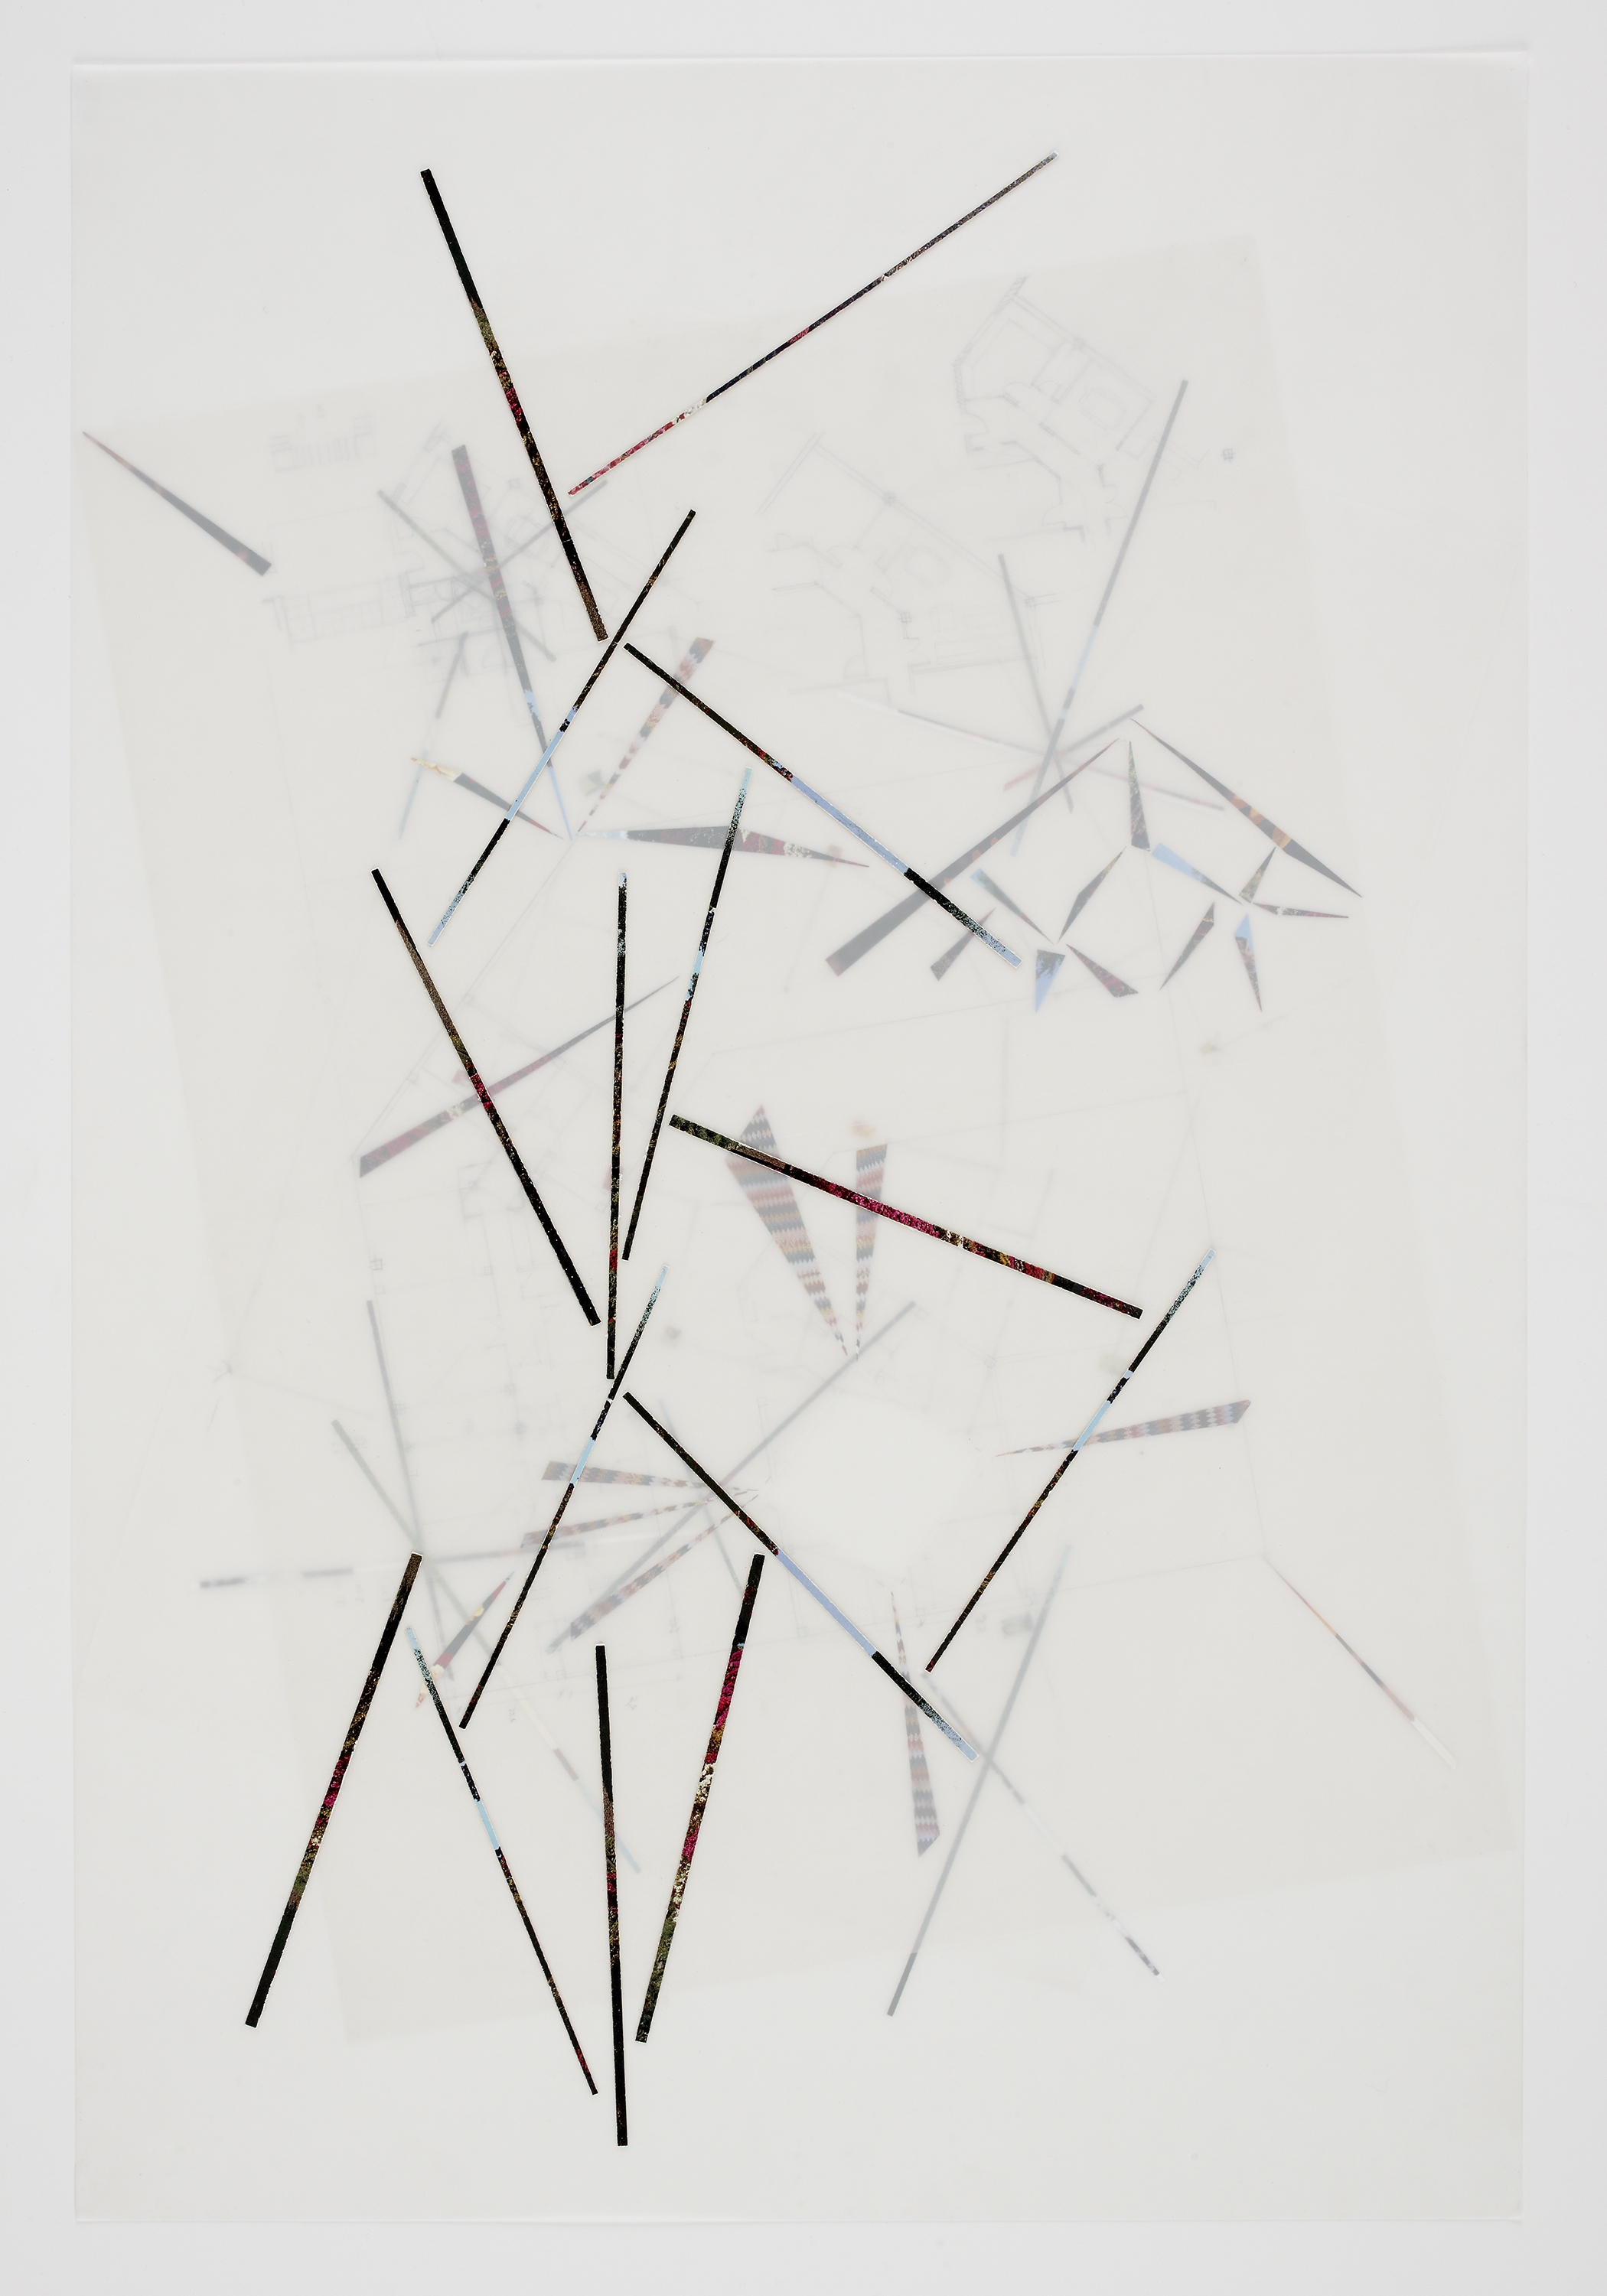 Untitled, 2010, collage and pencil on mylar and tracing paper, 34 x 22 inches/ 86 x 56 cm